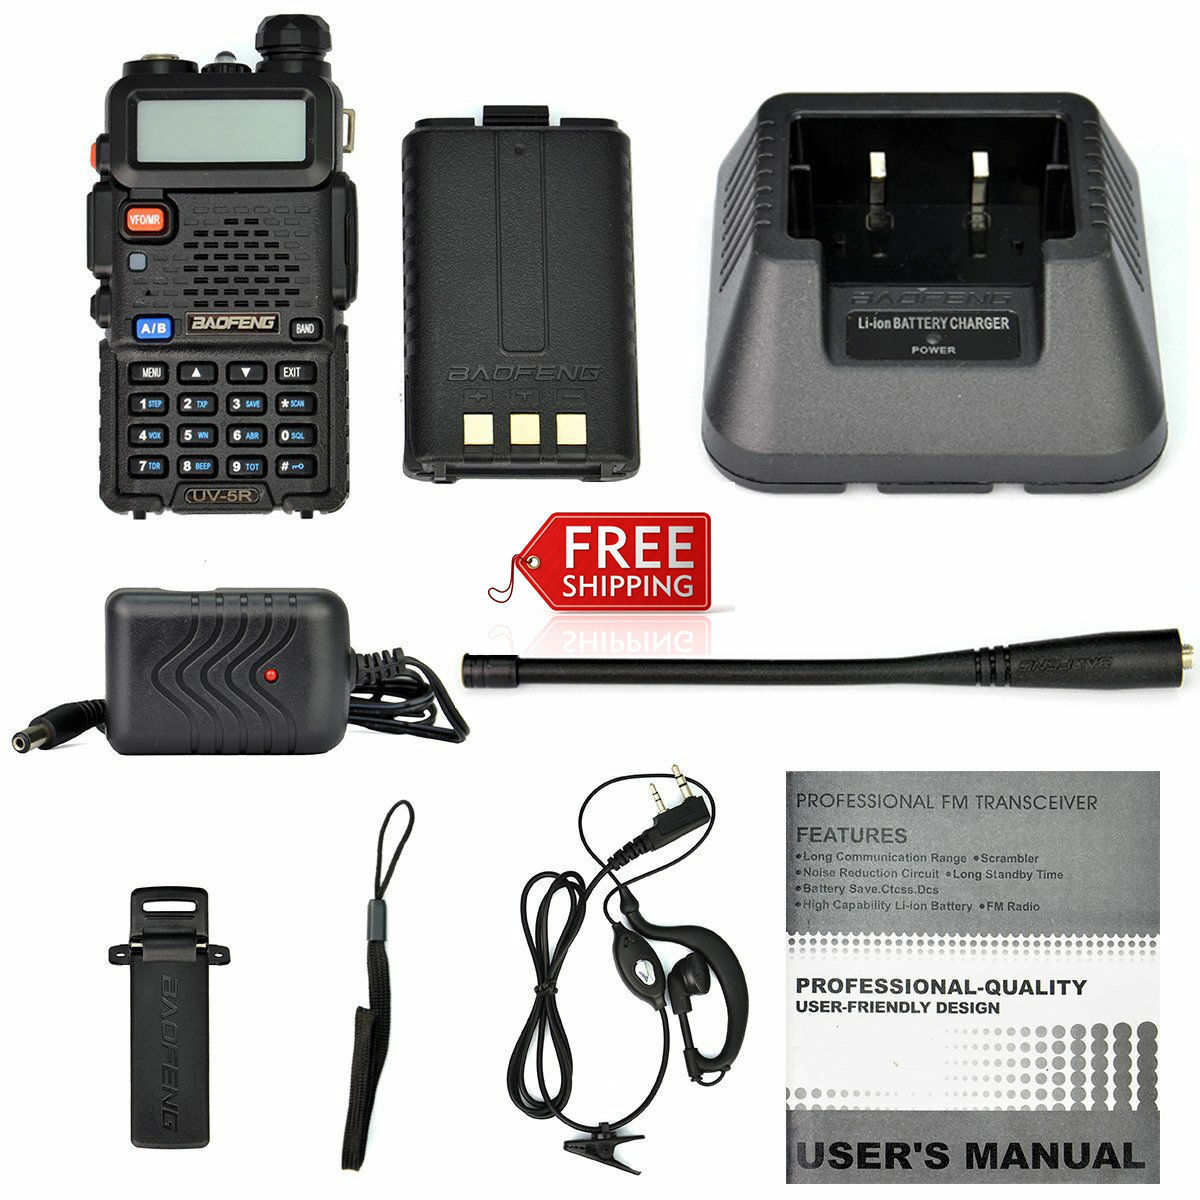 Portable Transceiver  Radio Scanner Handheld Police Fire VHF